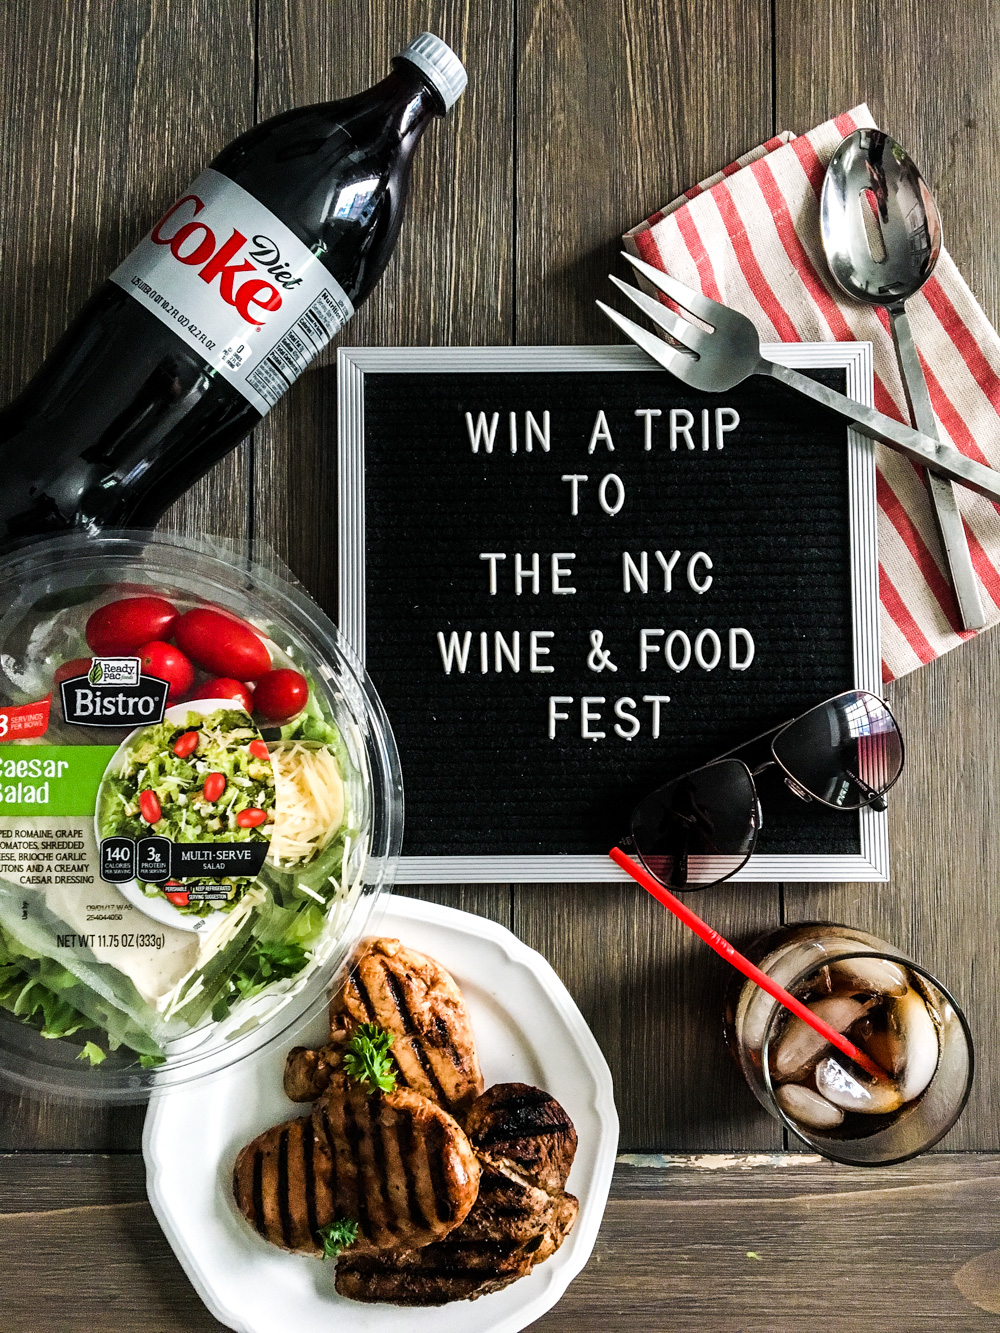 Lifestyle Blog Chocolate and Lace shares how to win tickets and travel to the NYC Wine and Food Festival.